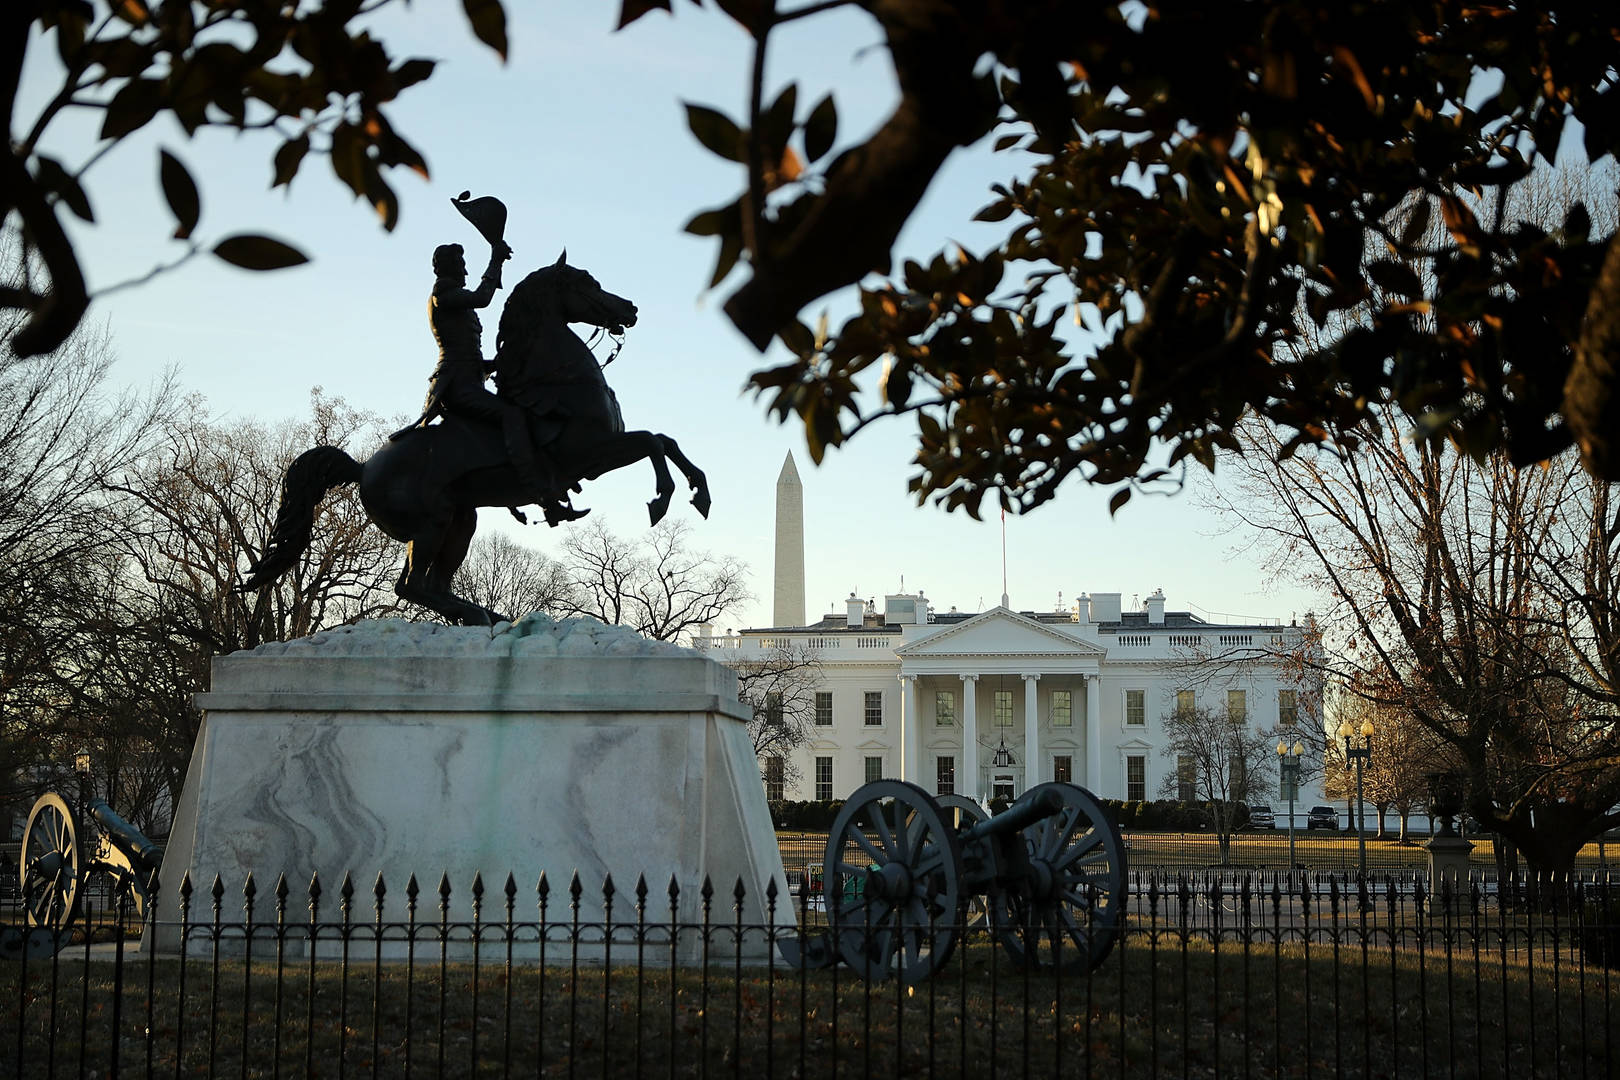 White House, Andrew Jackson, Protests, Statue